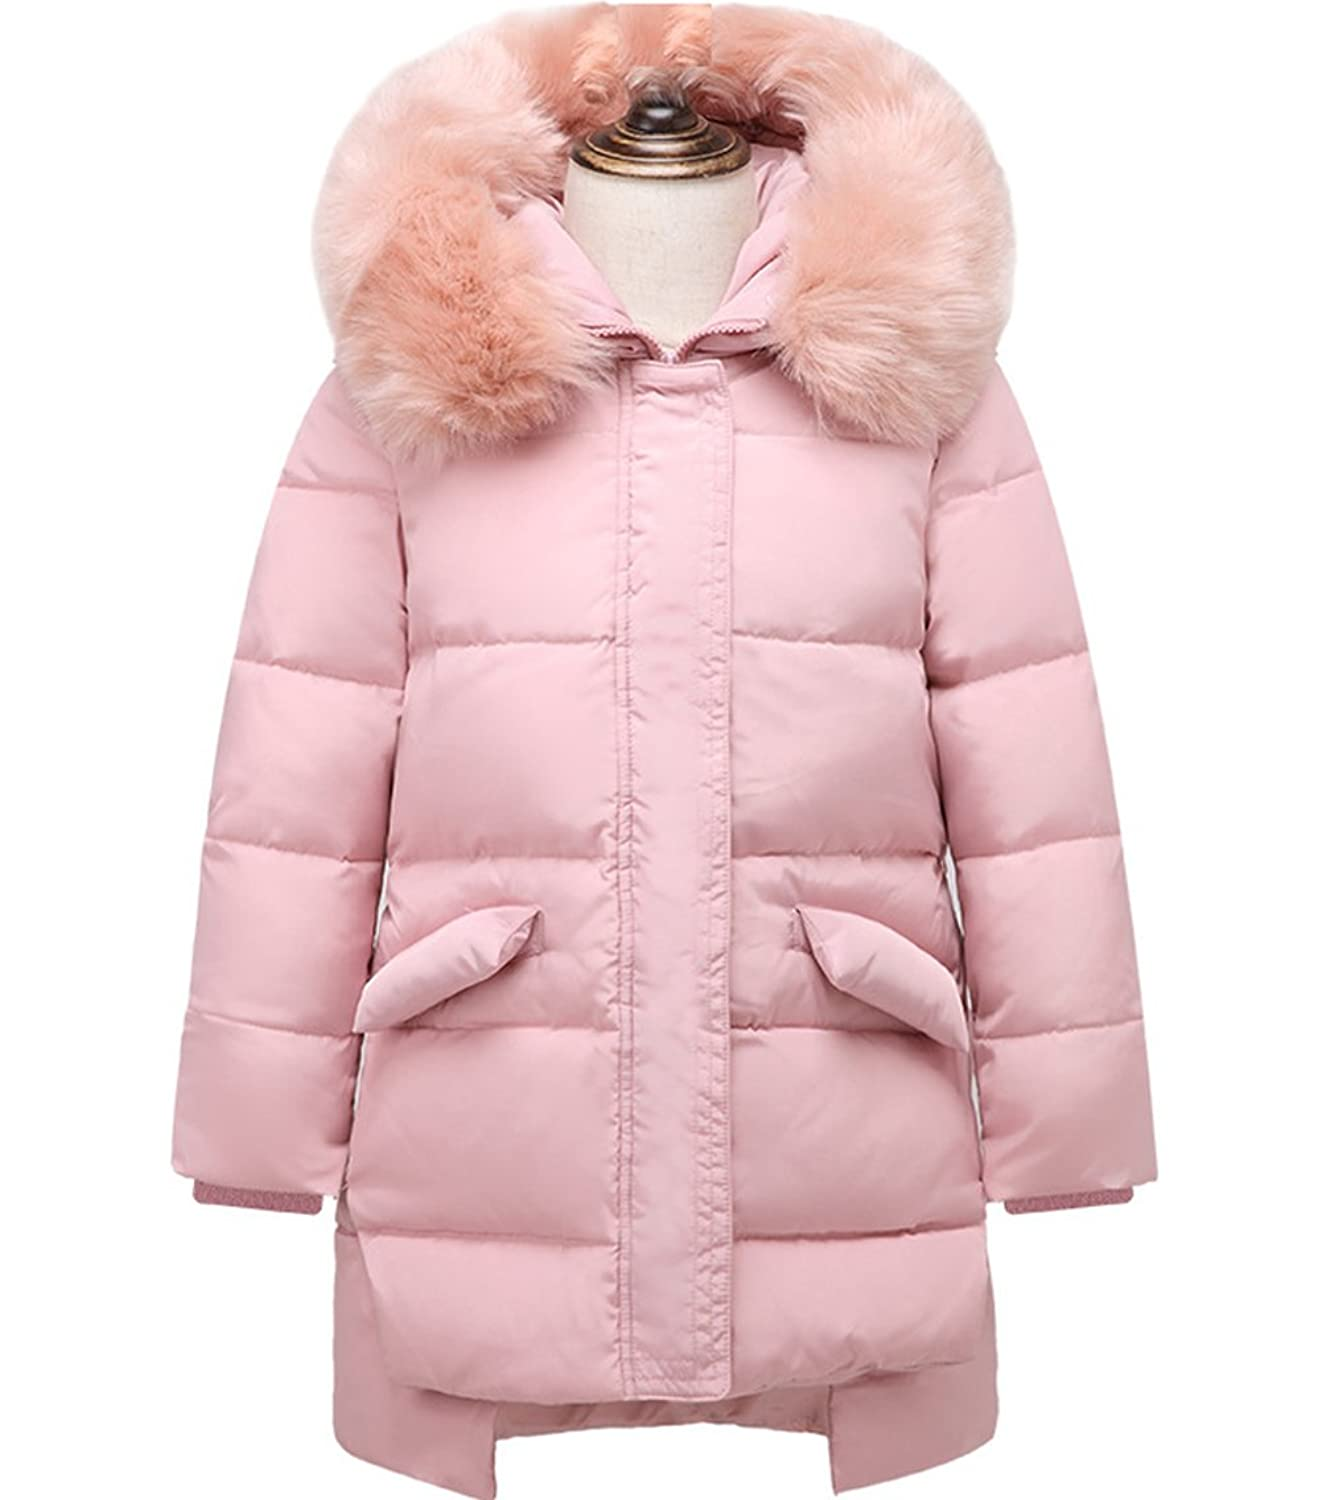 Big Girls' Winter Parka Down Coat Jacket with Fur Hood Parka Outwear